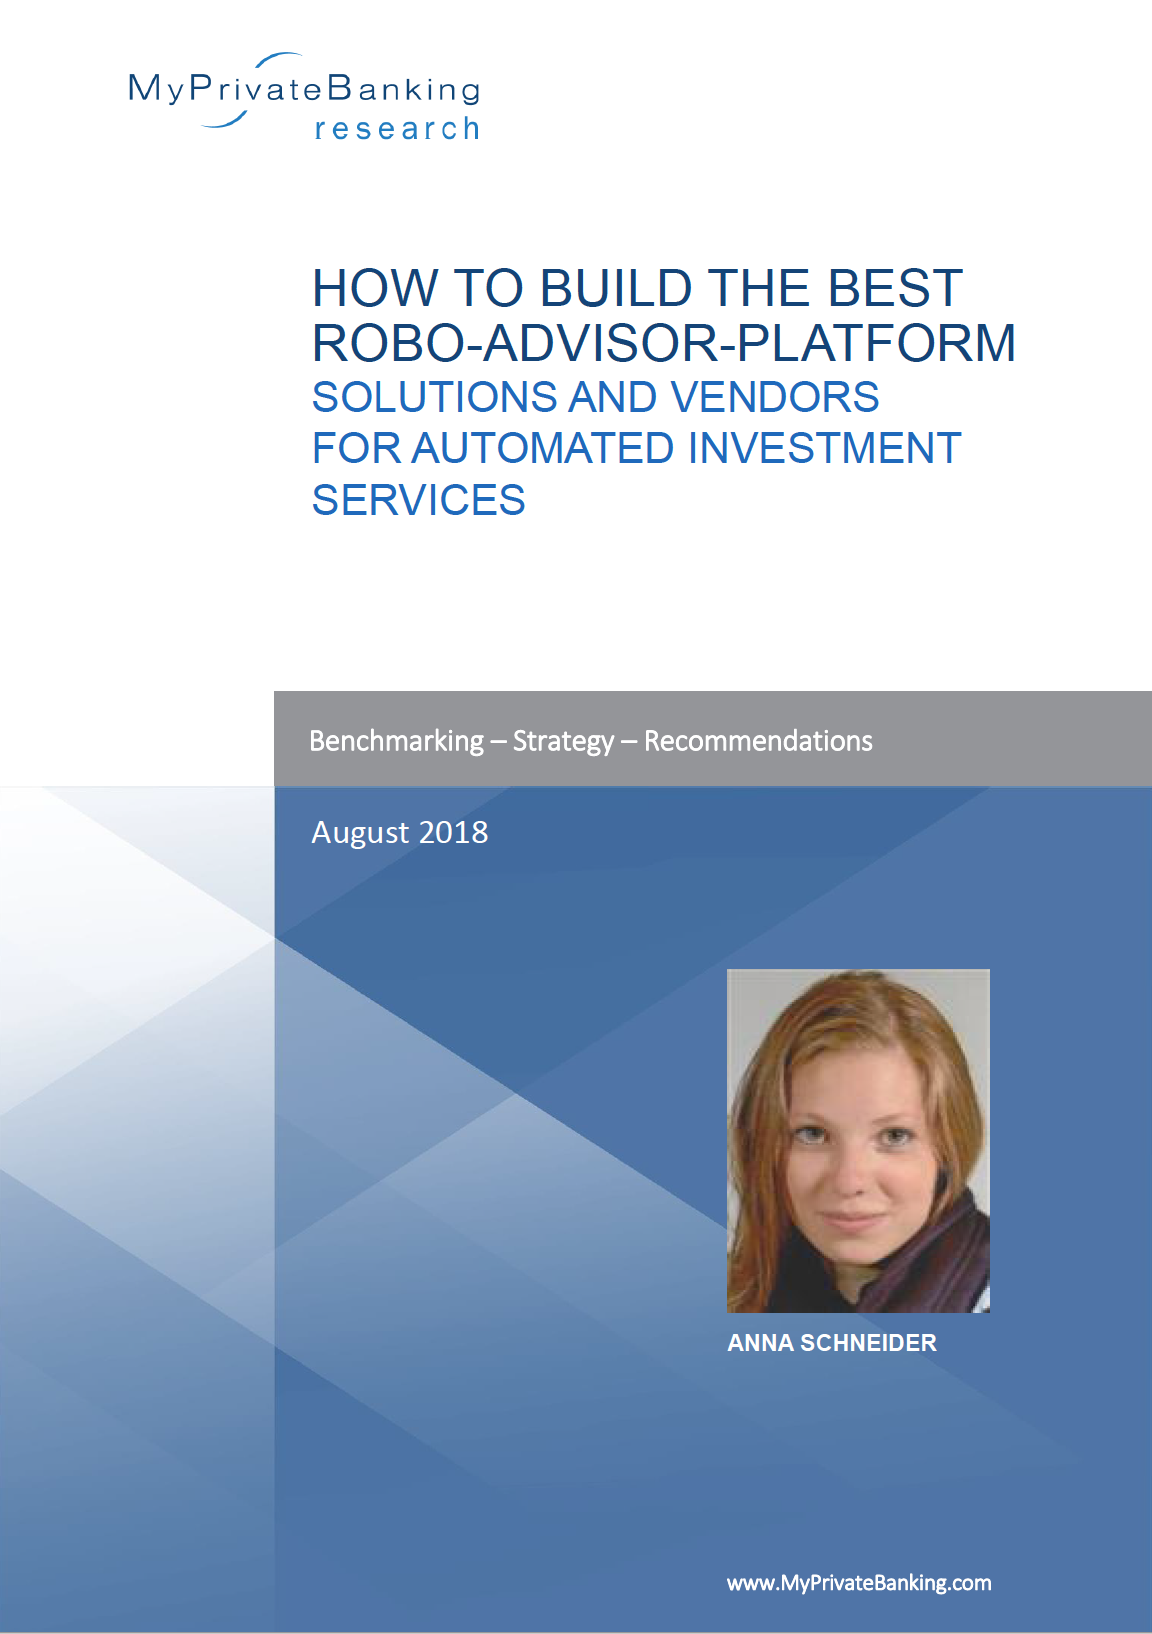 How to Build the Best Robo-Advisor-Platform - Solutions and vendors for automated investment services-Research Report-MyPrivateBanking Research